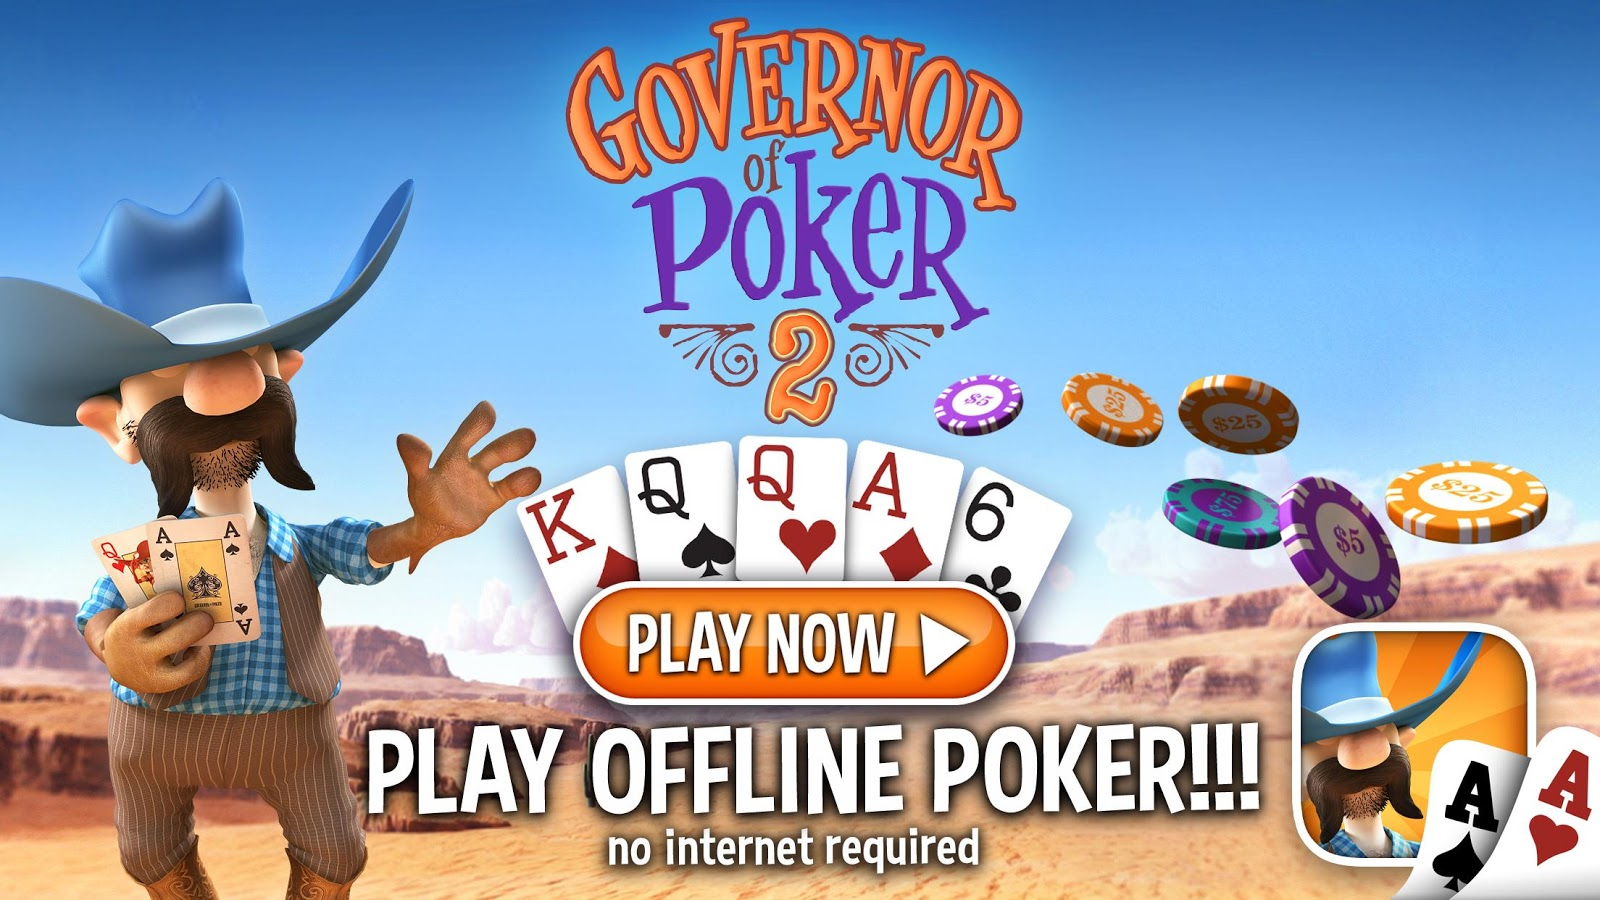 Governor of Poker 2 Premium Screenshot 5